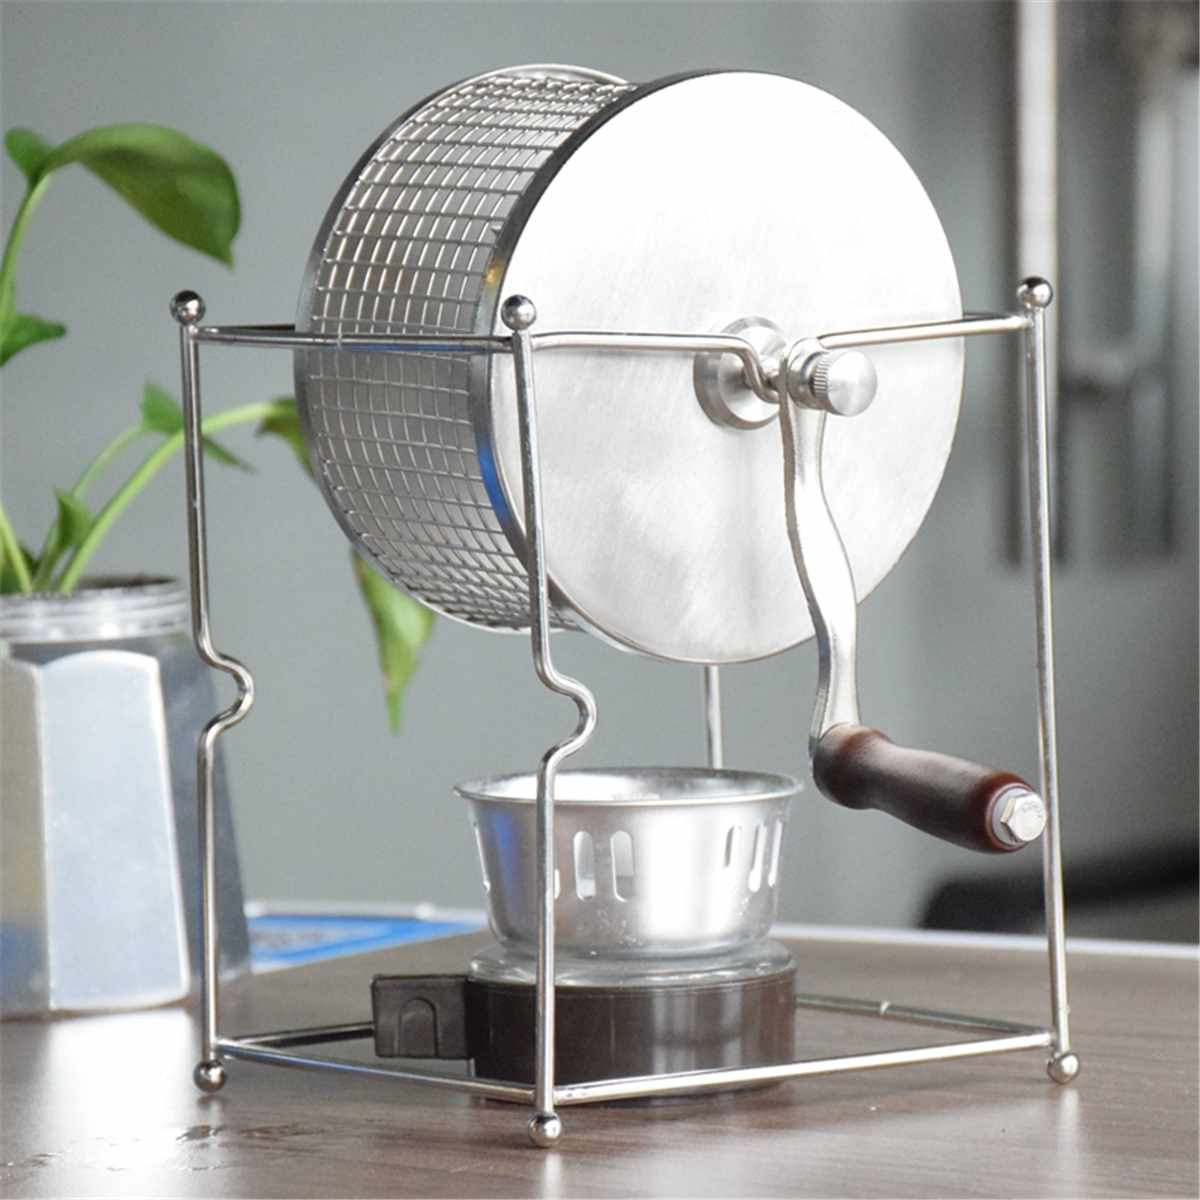 Barista Stainless Steel Coffee Roaster Manual Coffee Beans Baking Machine Roller Kitchen Accessories Appliances Coffee Tools(China)